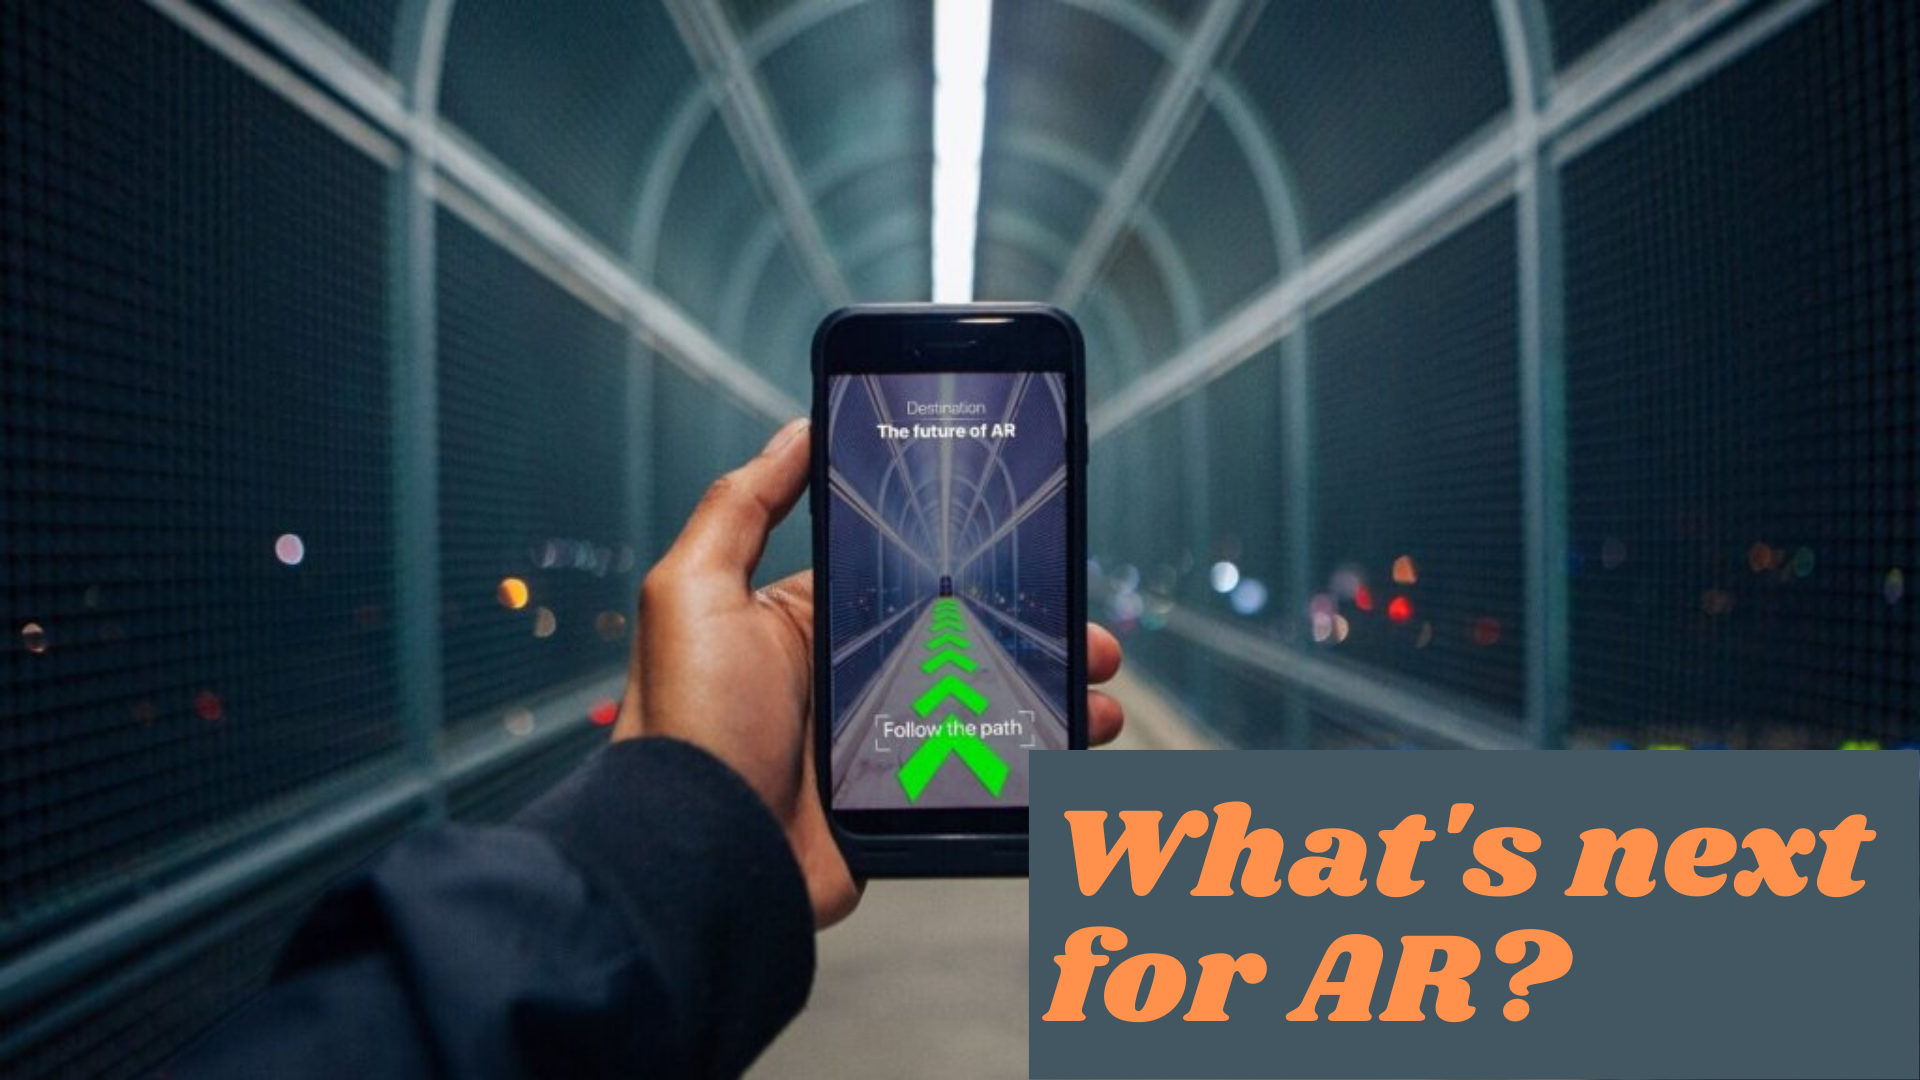 Looking at phone for indoor AR navigation